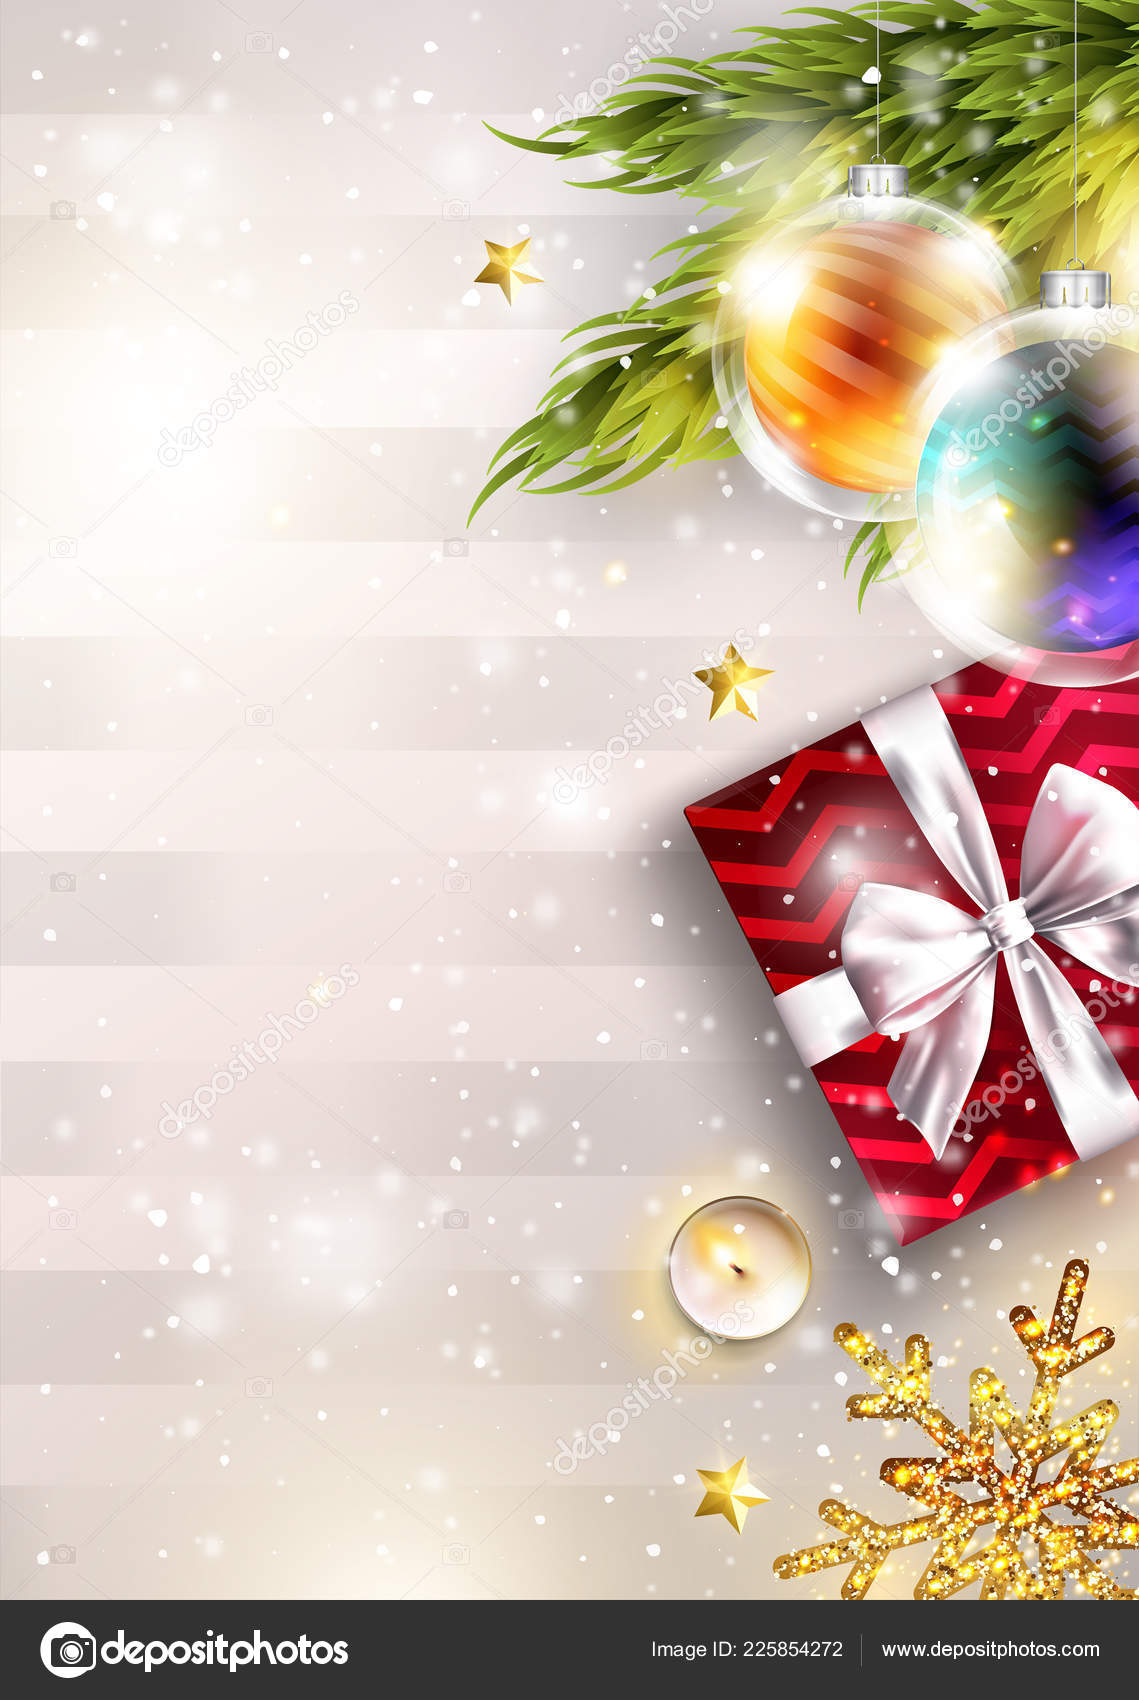 Christmas Graphics 2019.Christmas Vector Background With Copy Space Invitation